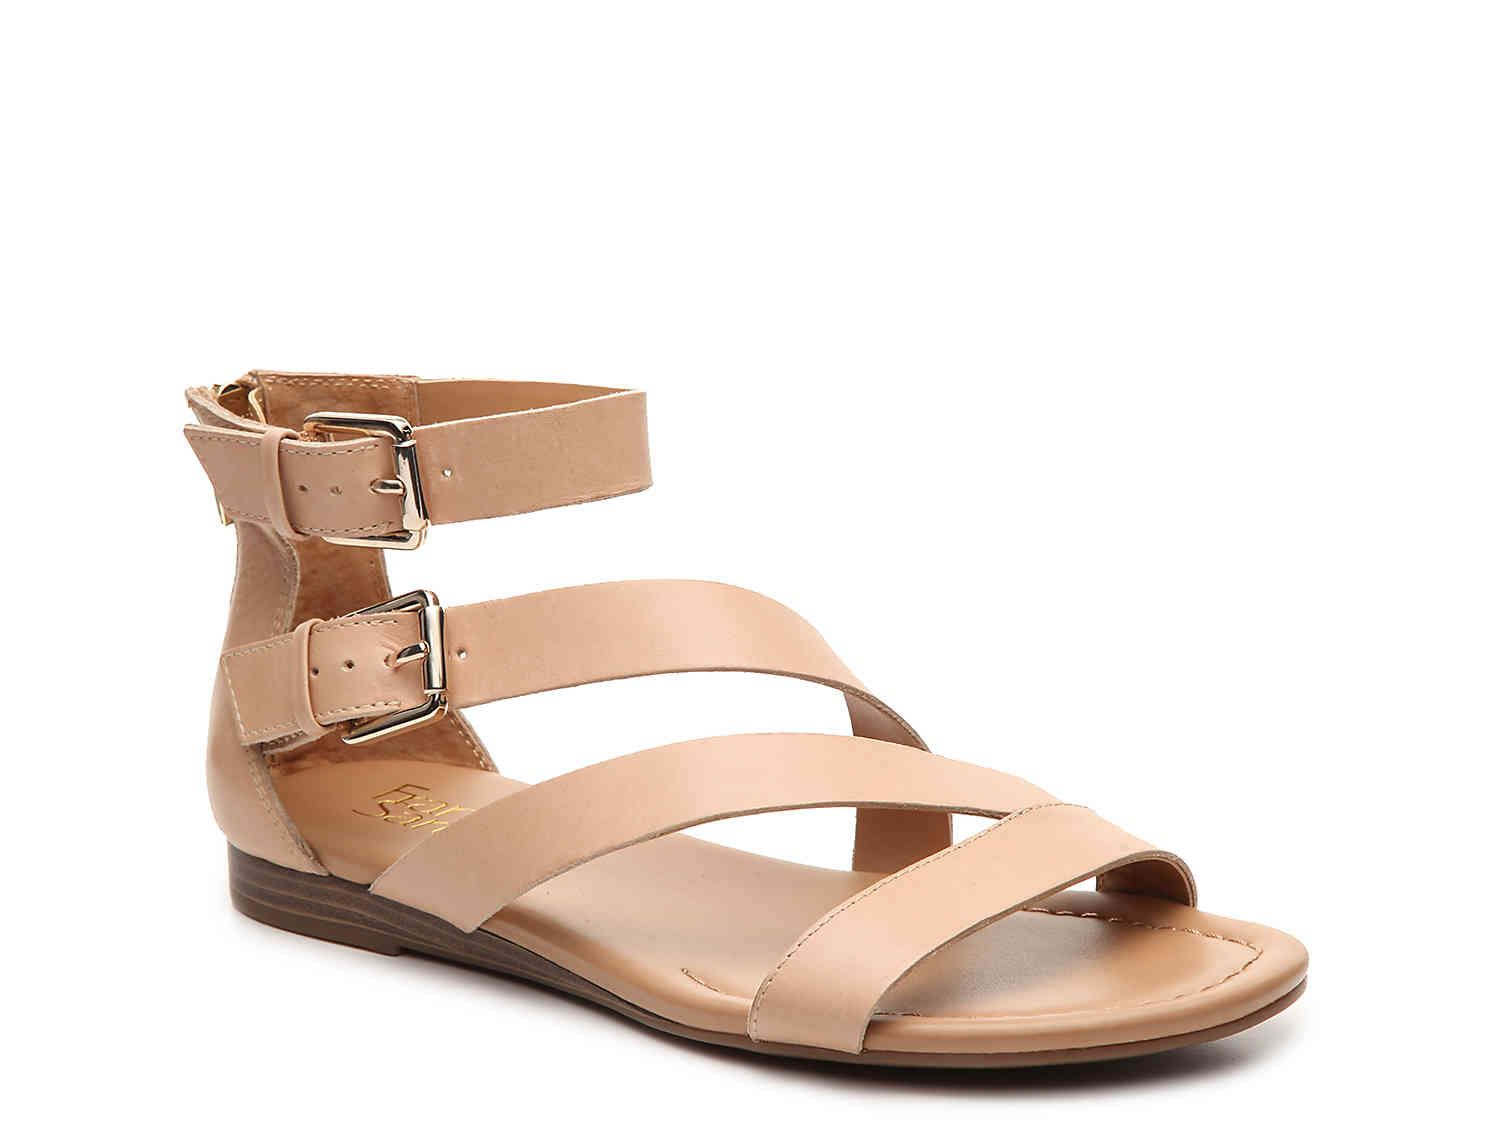 6f2439b507f8 Greta Flat Sandal.  49.95 at NSW. Reviews - very comfy true to size. Also  available in Black   Conac